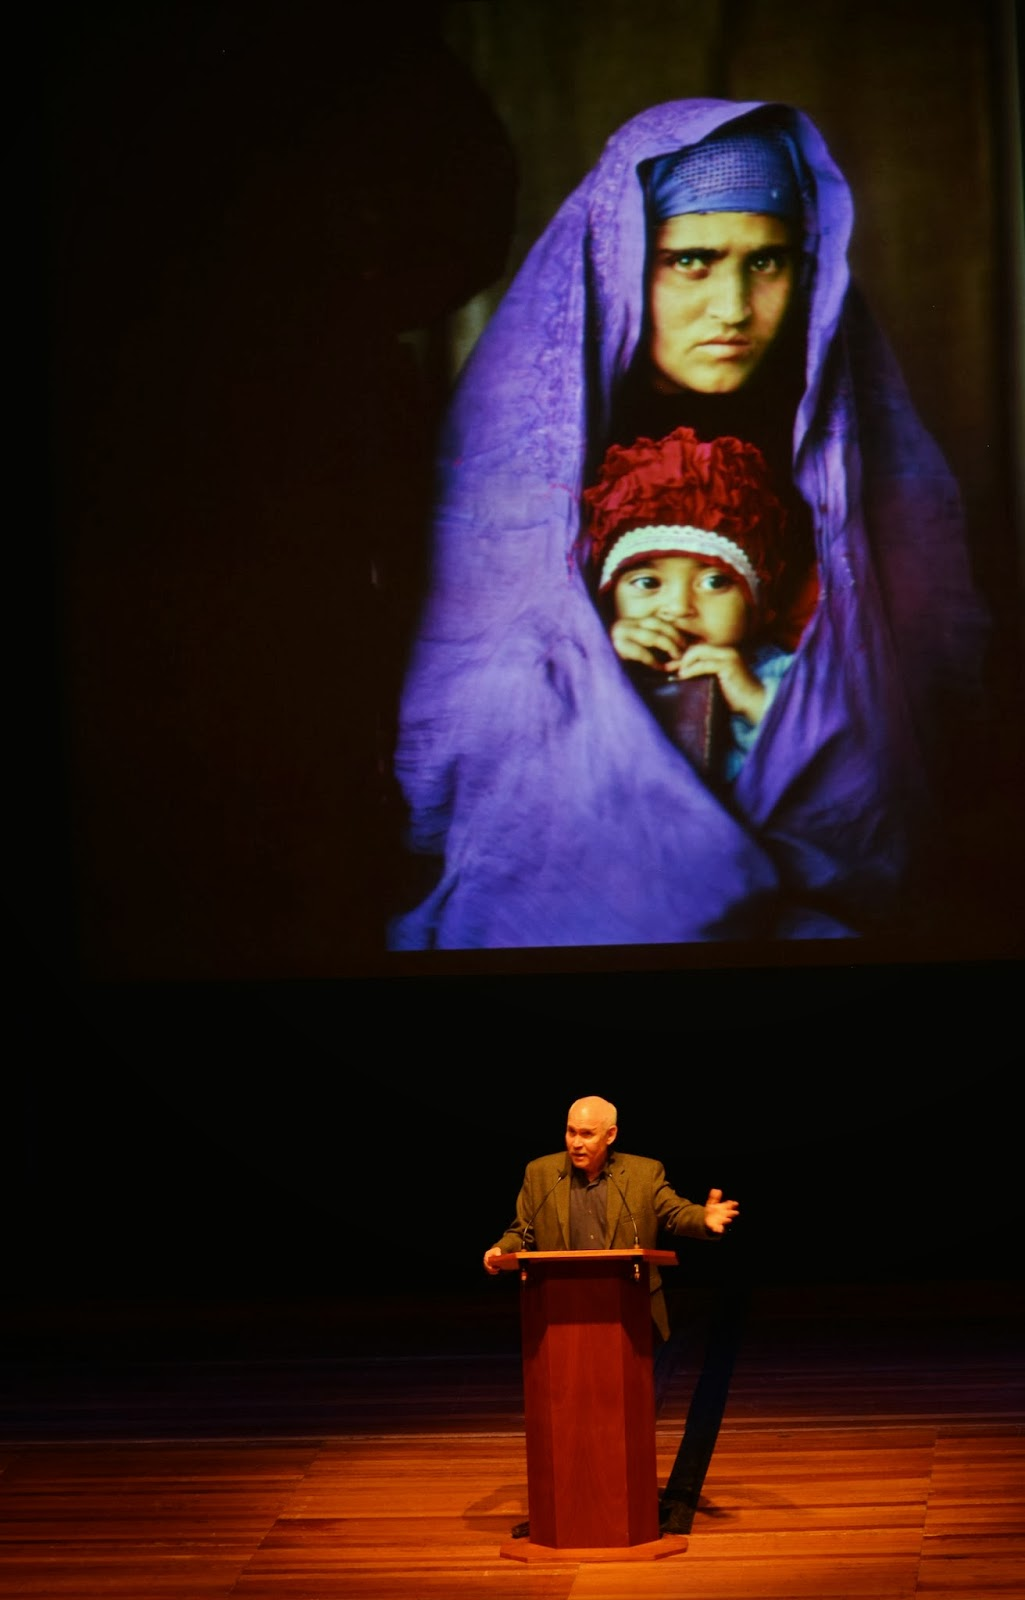 national geographic finding the afghan girl Search for the afghan girl in 1985, the haunting picture of an enigmatic follow the amazing story of how the national geographic team has.